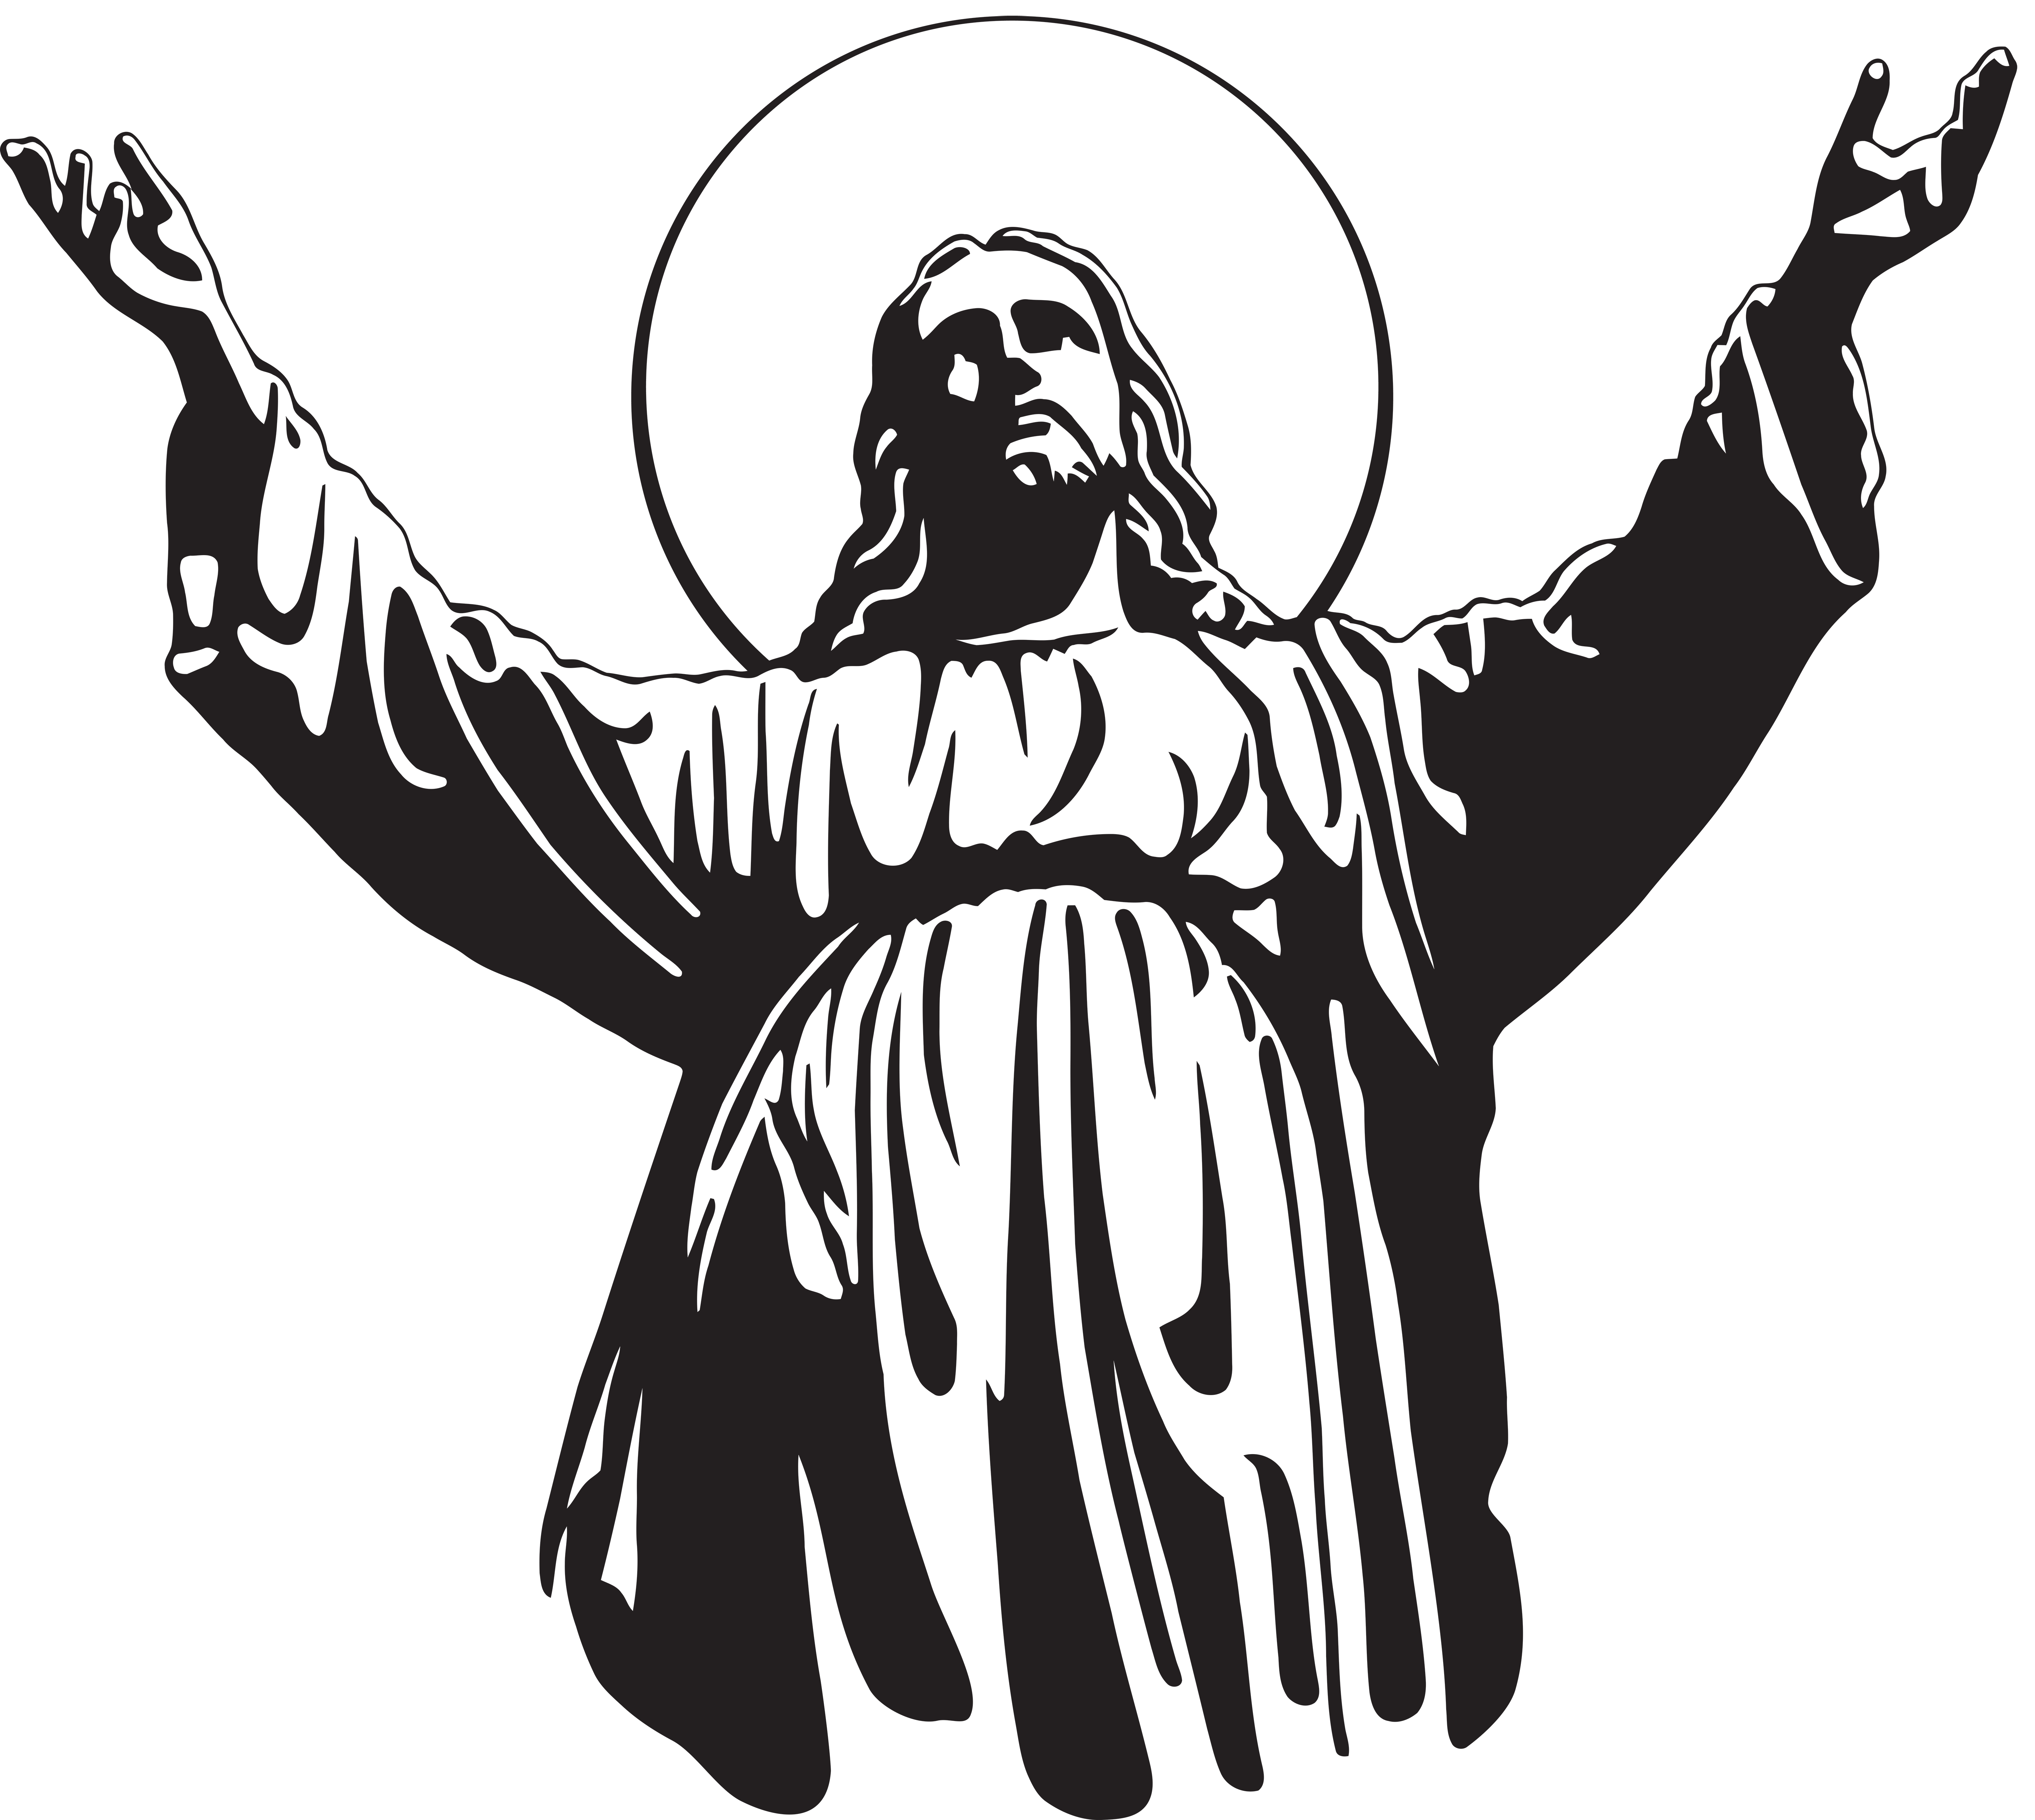 Heaven clipart jesus. Christ son of god